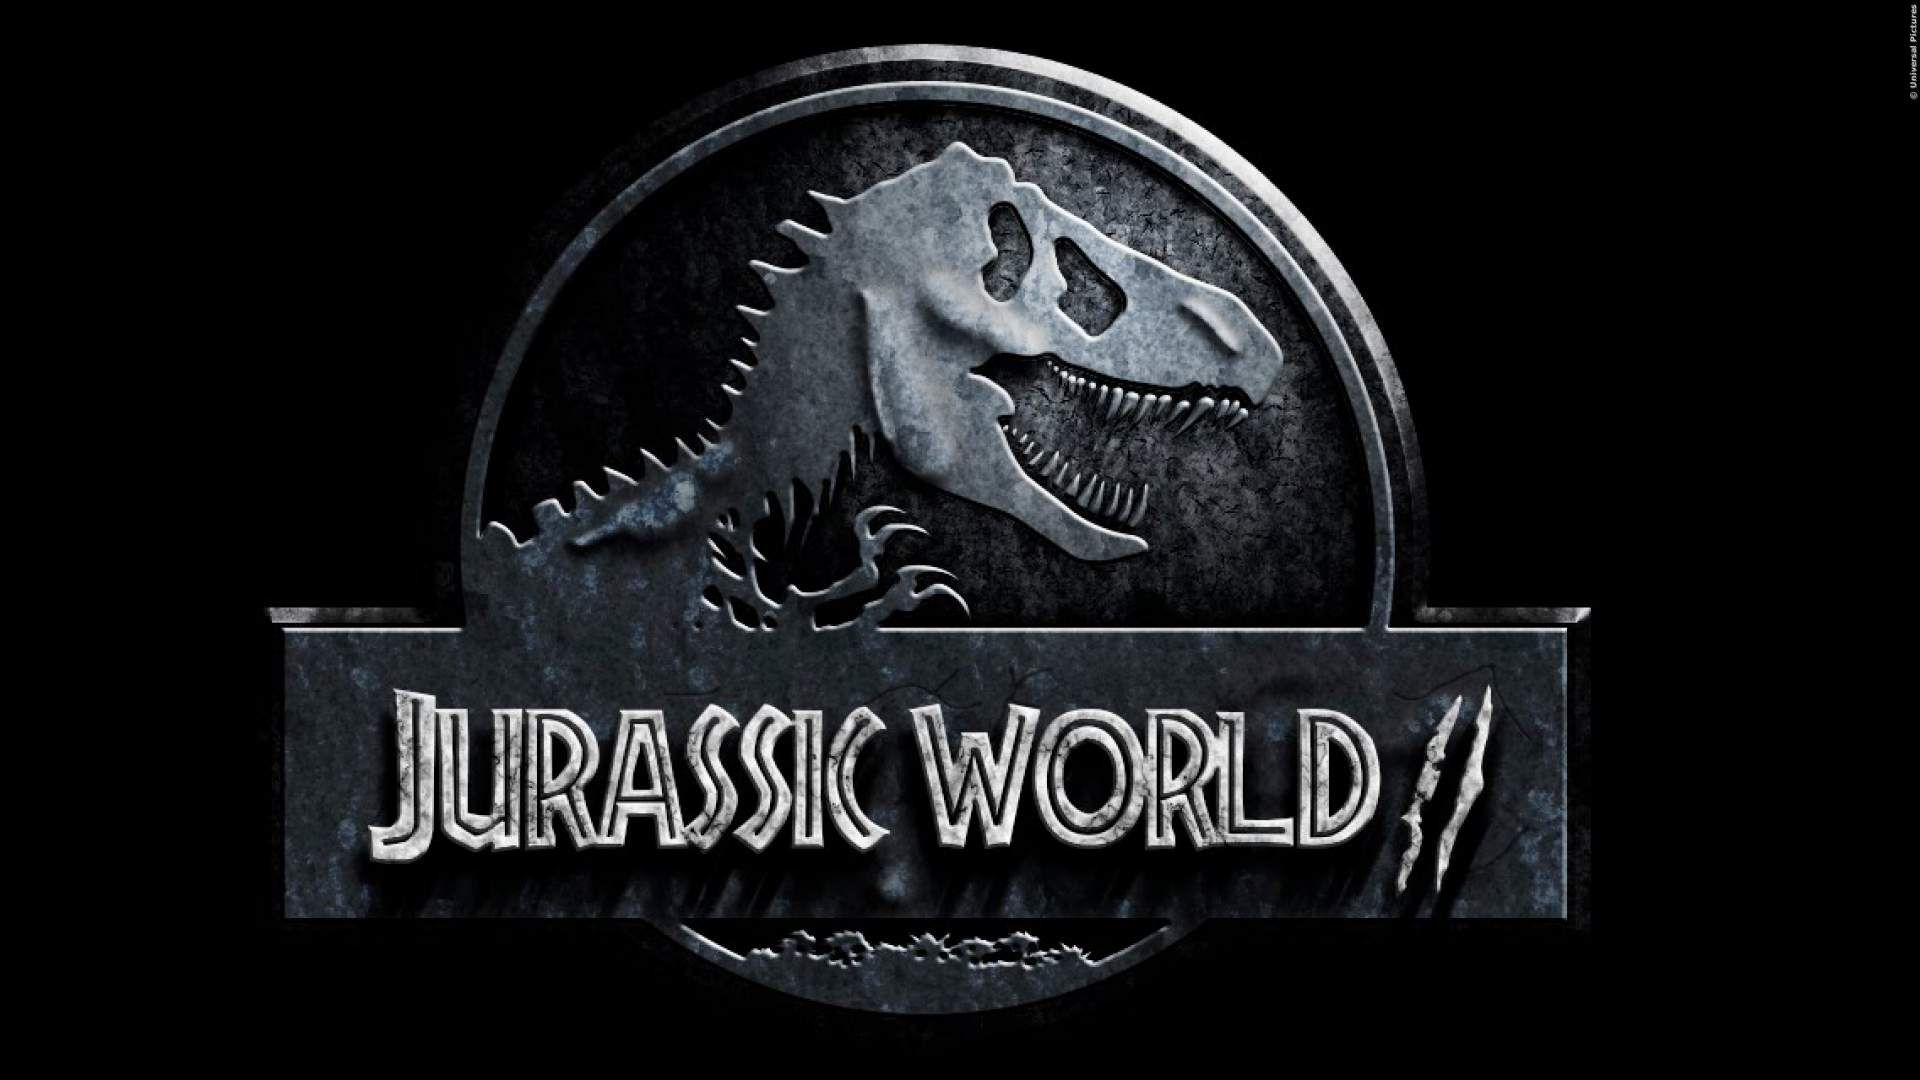 Jurassic World Is A American Science Fiction Adventure Film